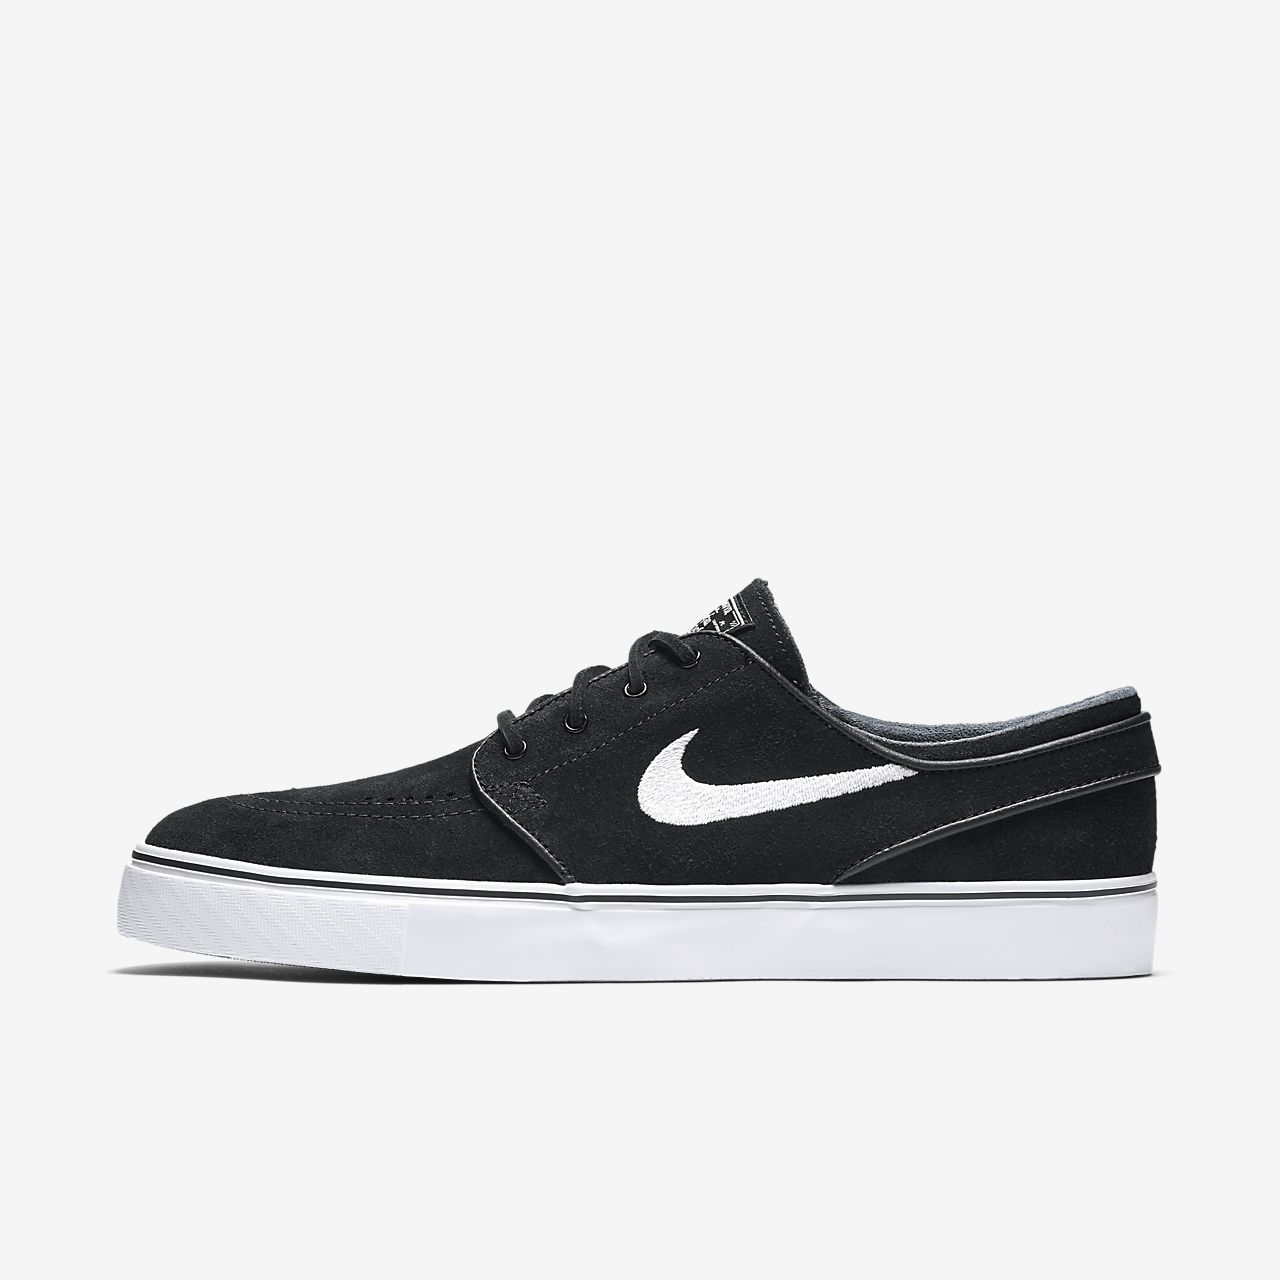 Nike SB Zoom Stefan Janoski OG Men's Skateboarding Shoes Black/White sQ8689N